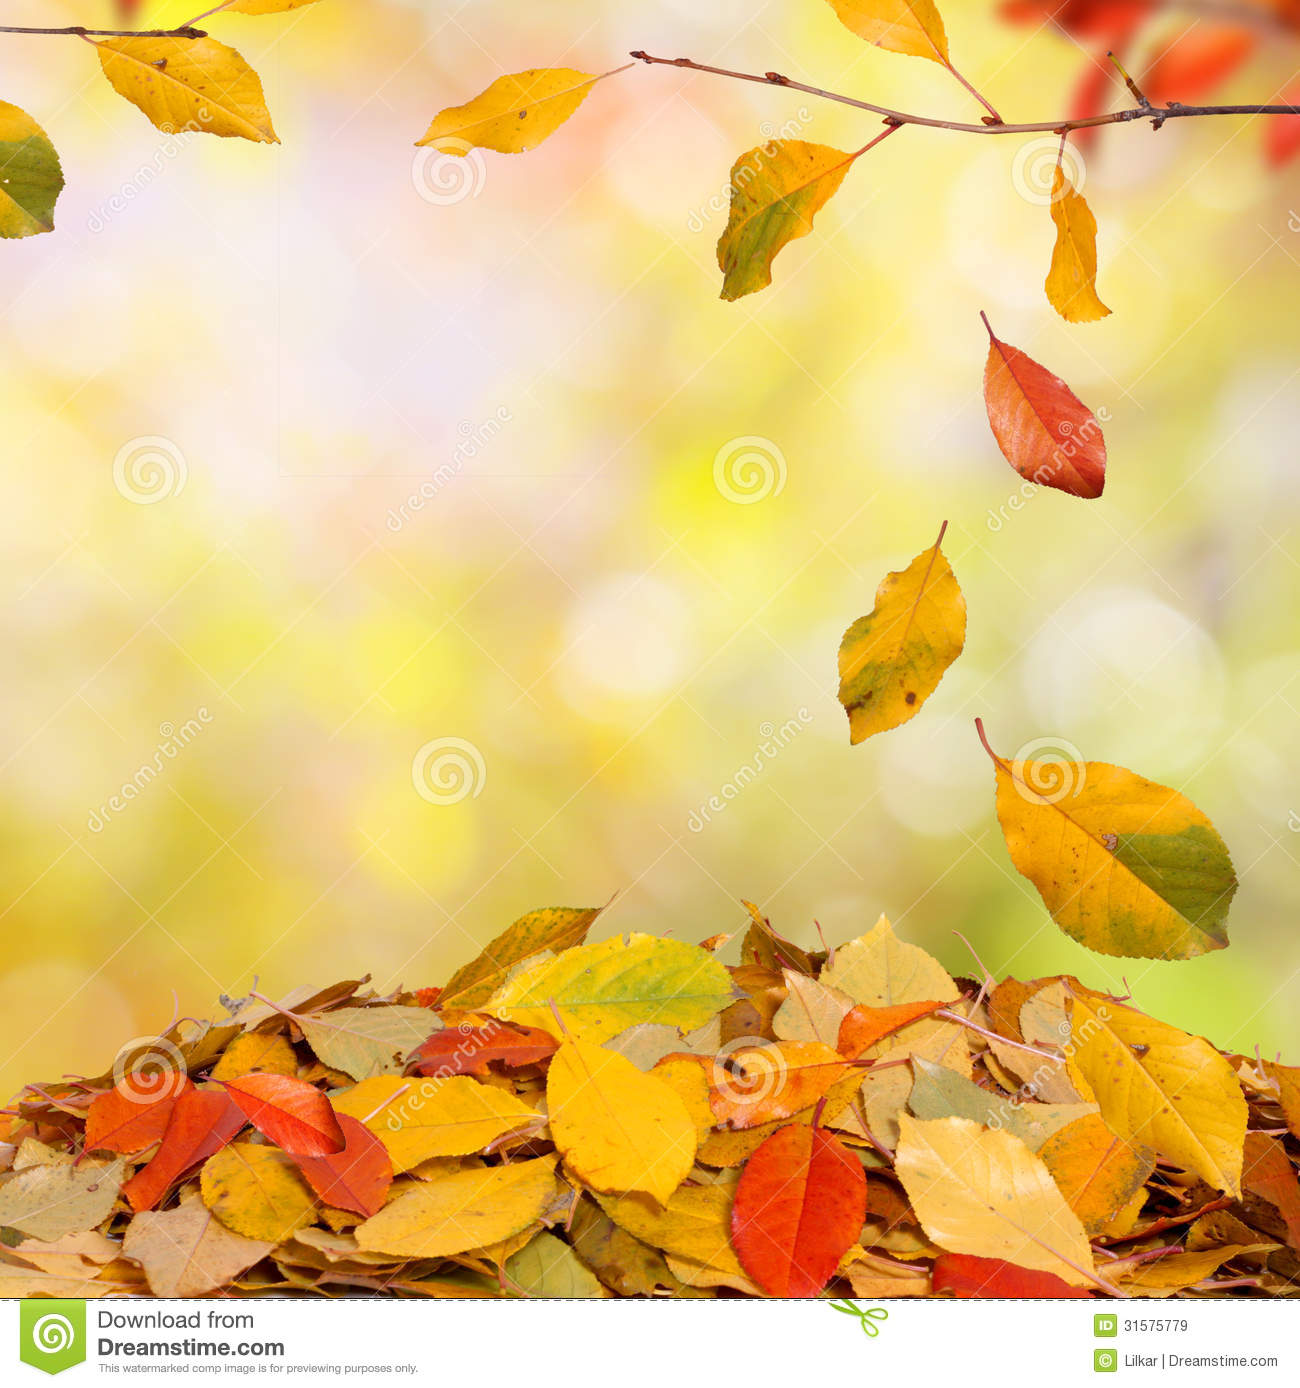 Falling Leaves Wallpaper Free Download Autumn Background Stock Image Image Of Environment Fall